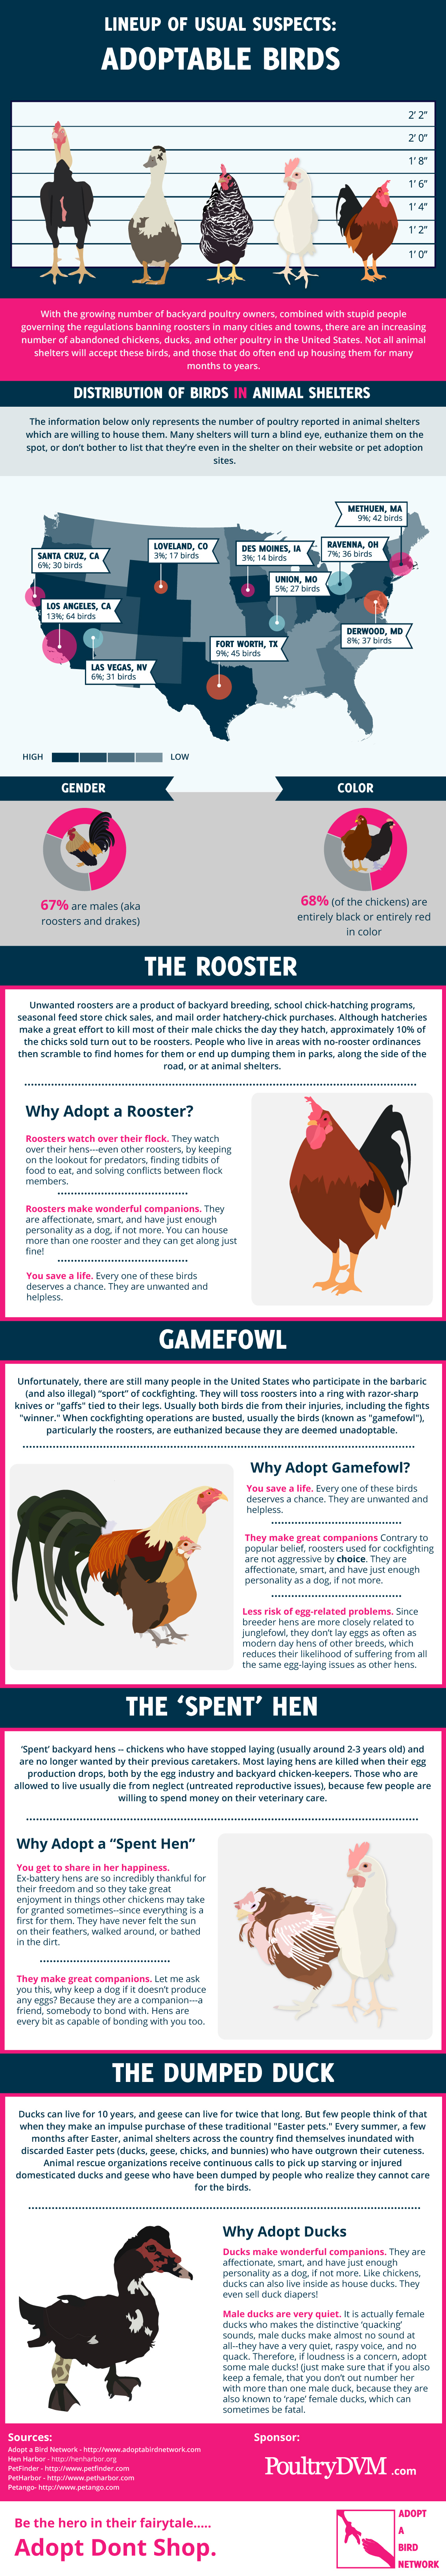 PoultryDVM - Lineup of Usual Suspects: Adoptable Birds